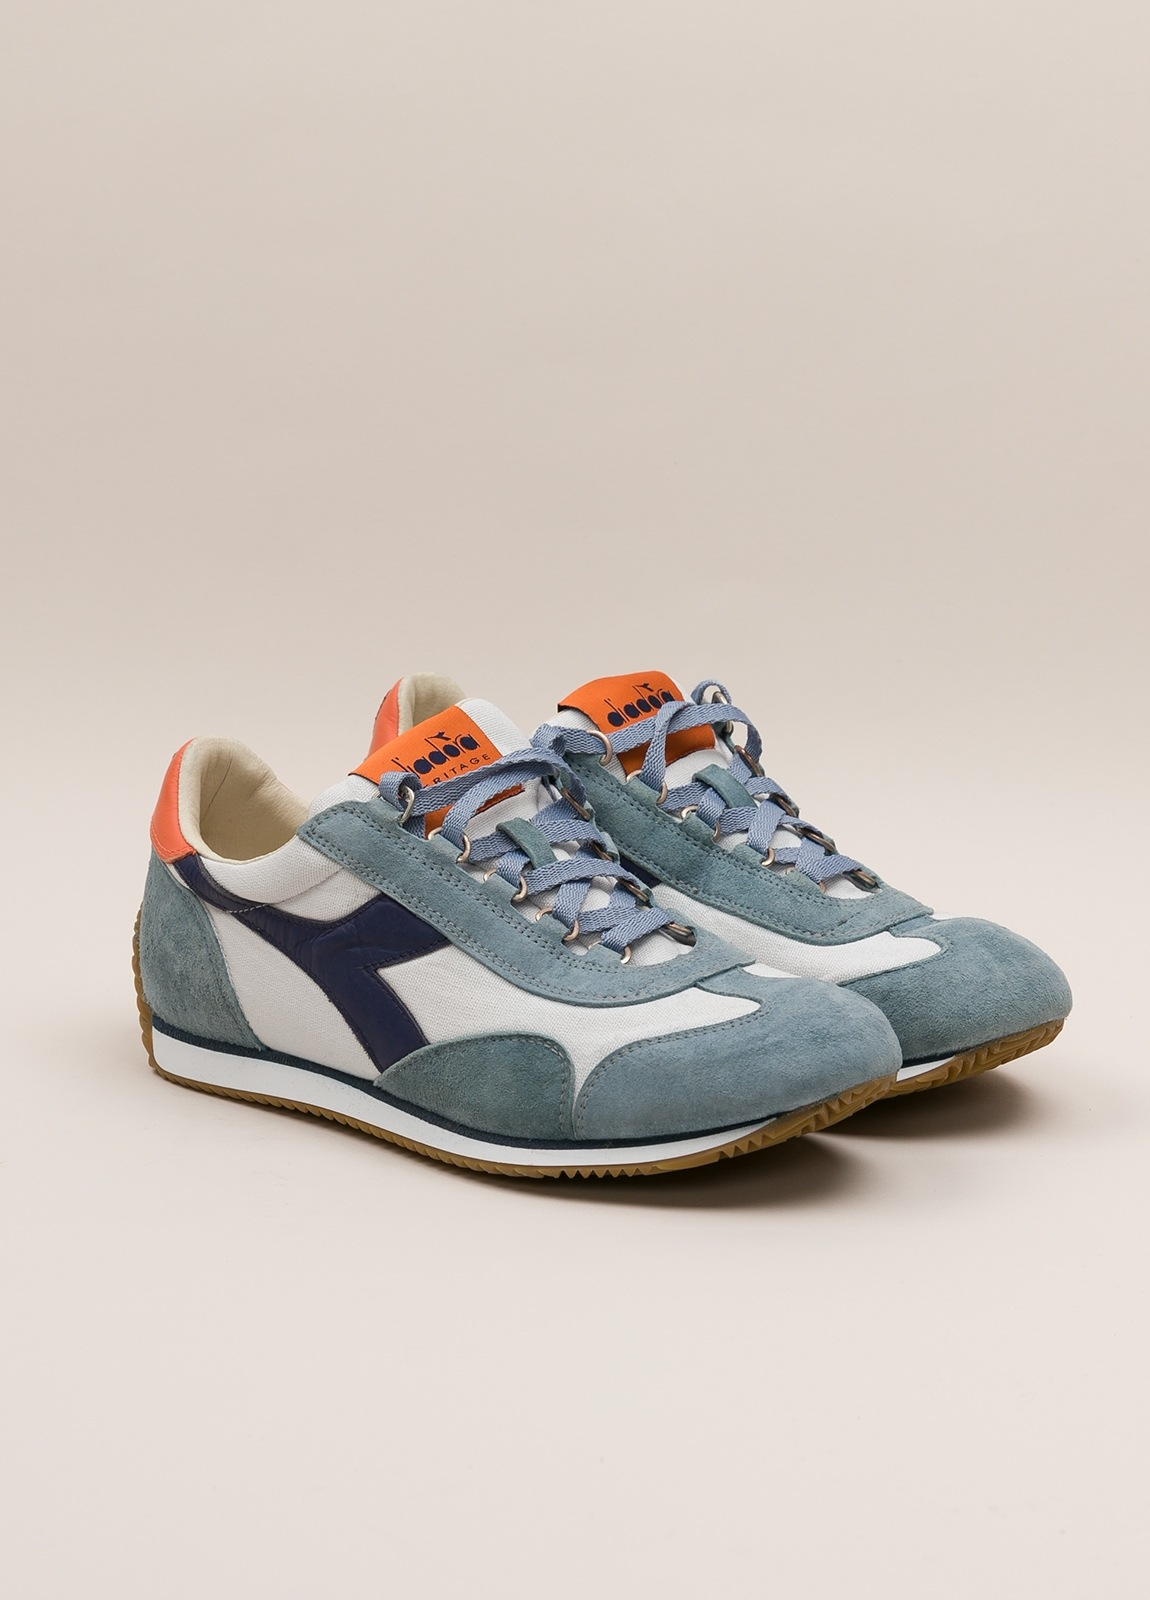 Sneakers DIADORA color celeste - Ítem3